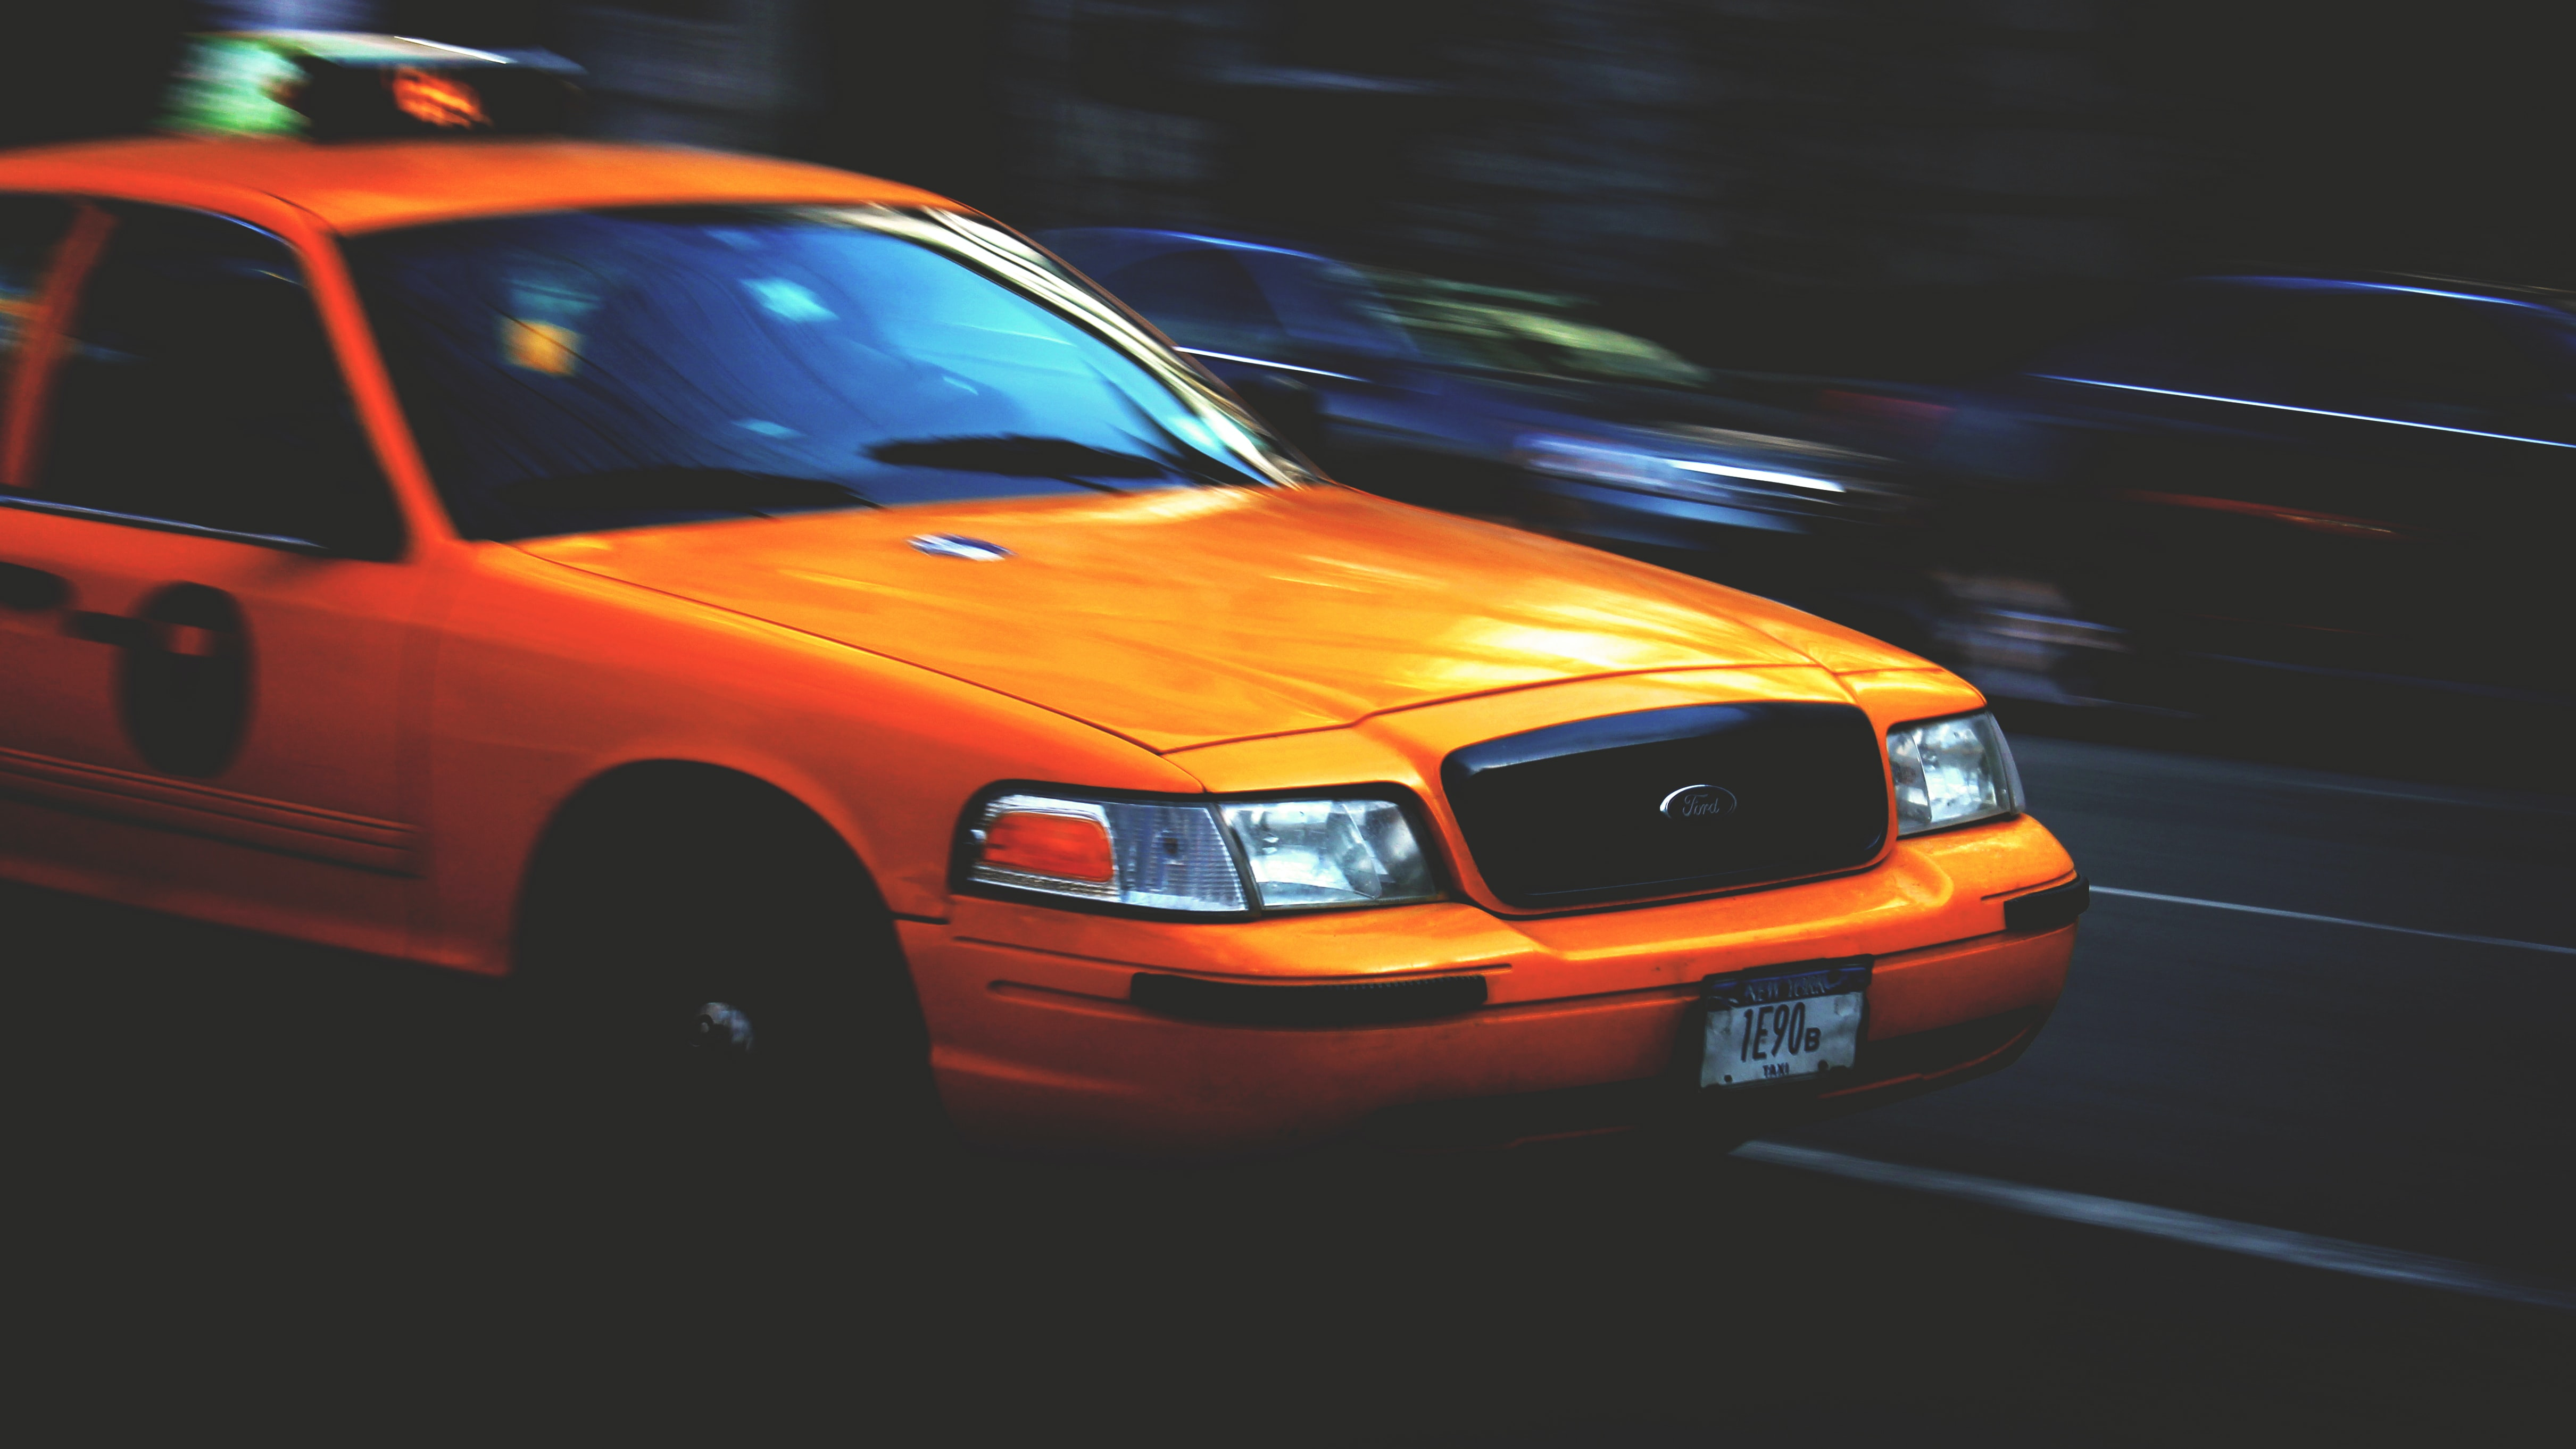 Yellow Ford Taxi Cab driving against blurred background